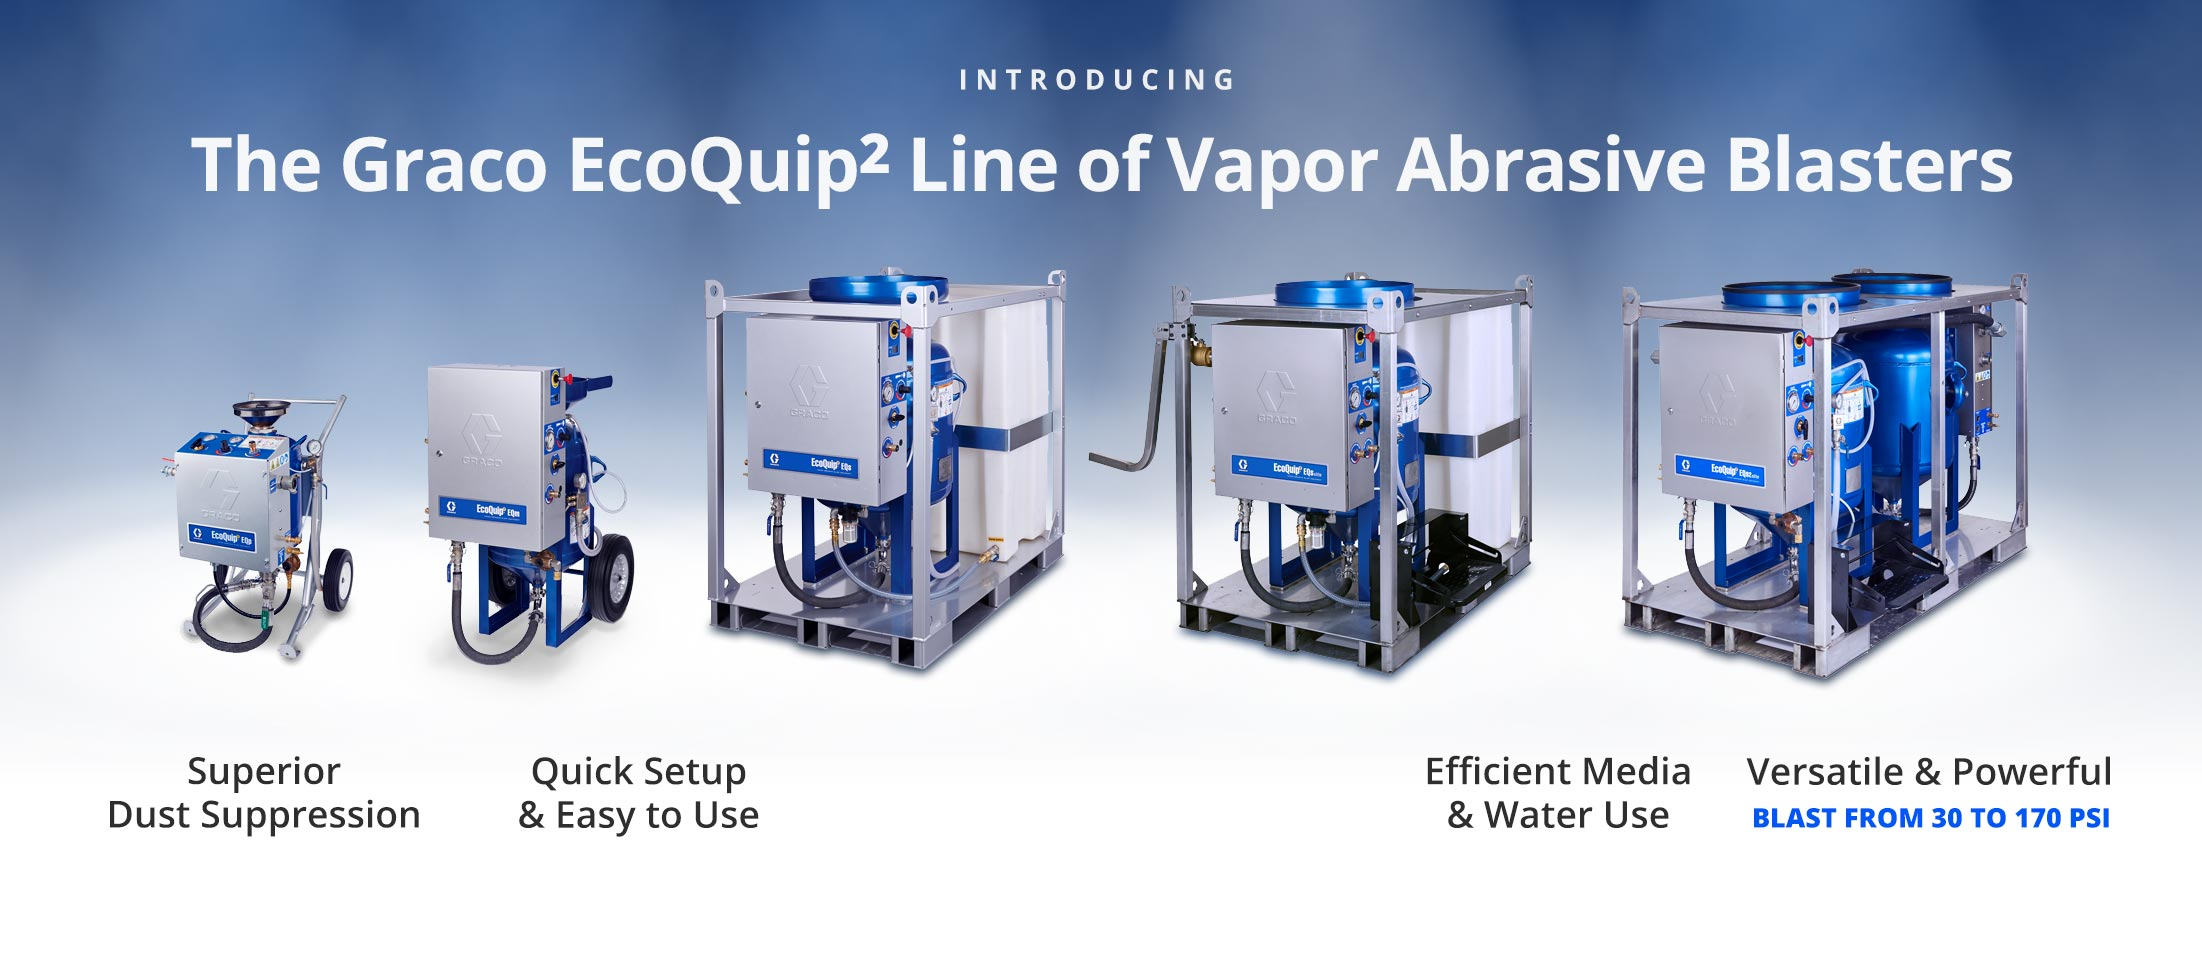 Blastall Equipment & Supply - Graco Ecoquip Vapor Abrasive